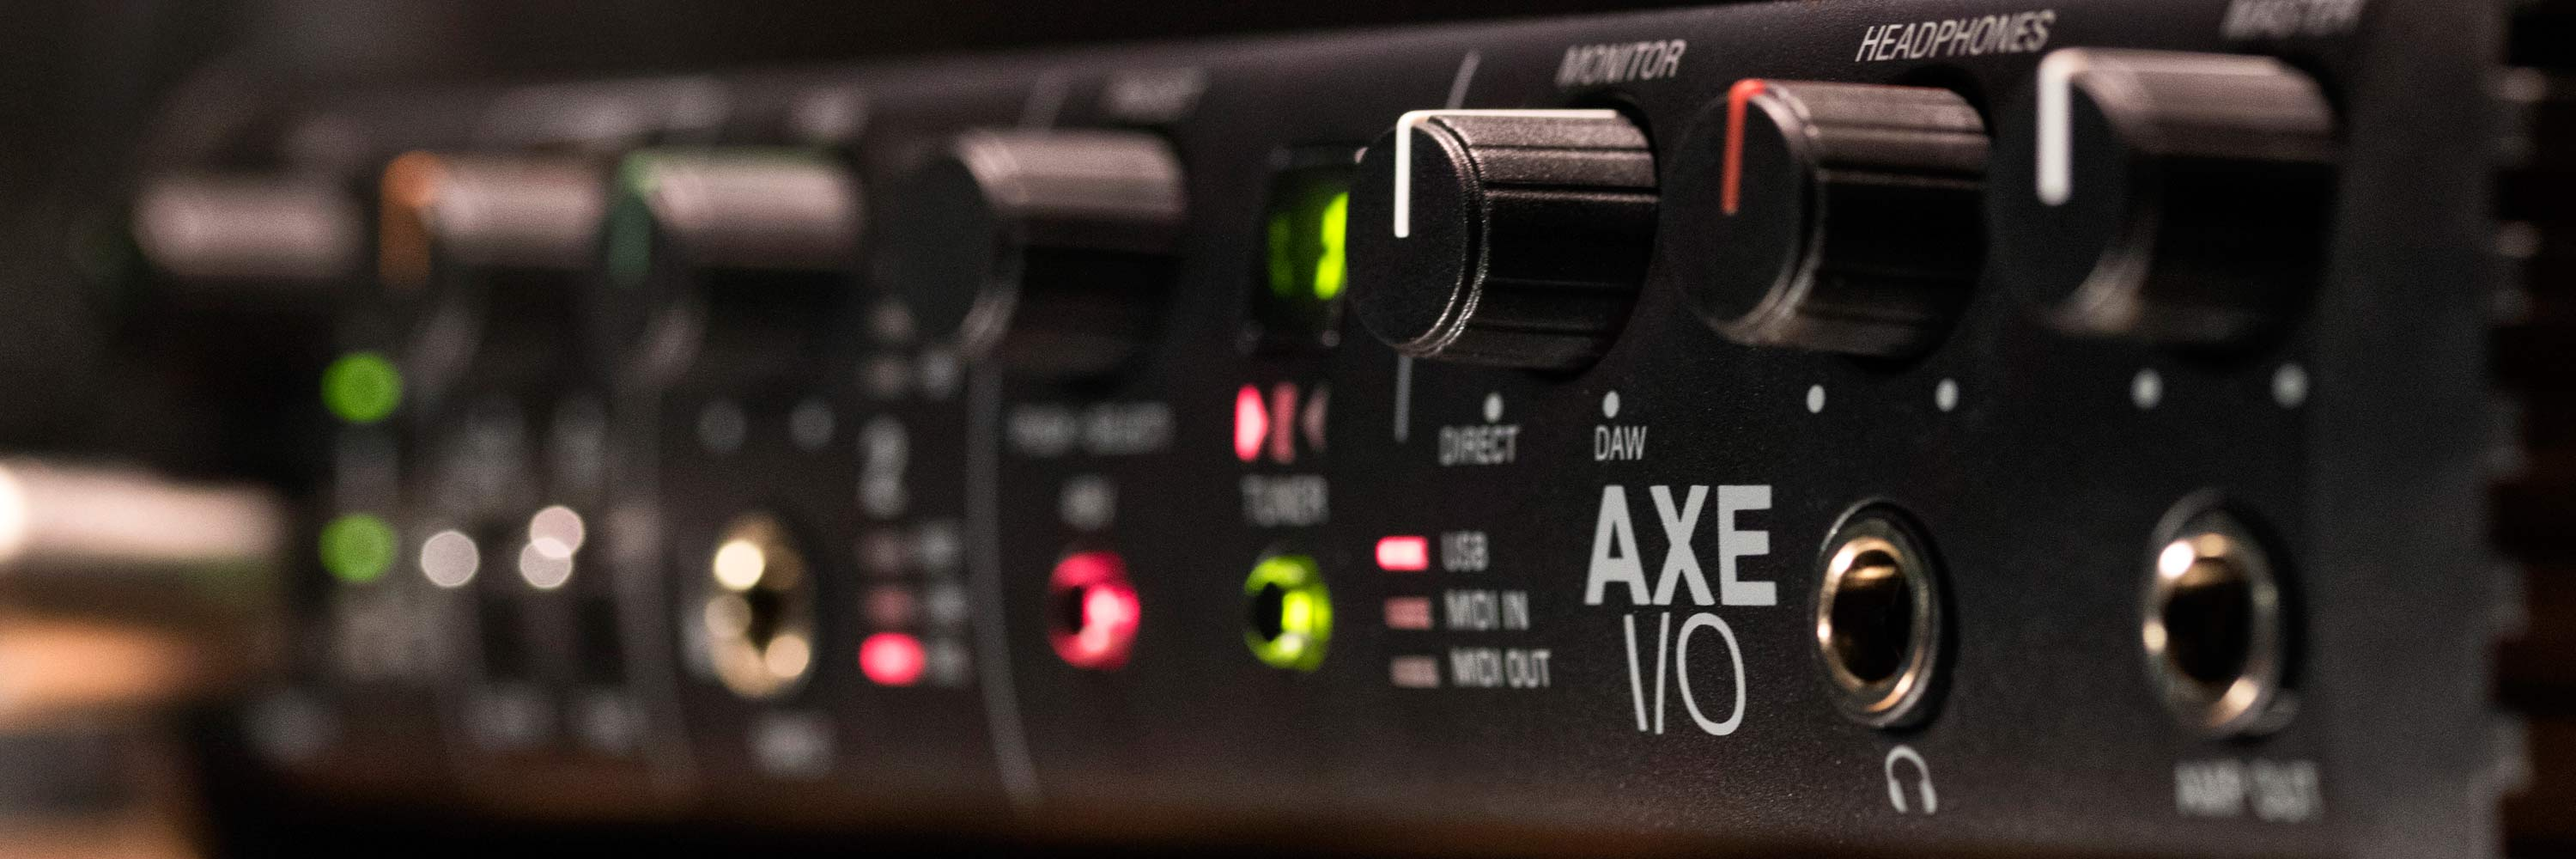 AXE I/O premium audio interface